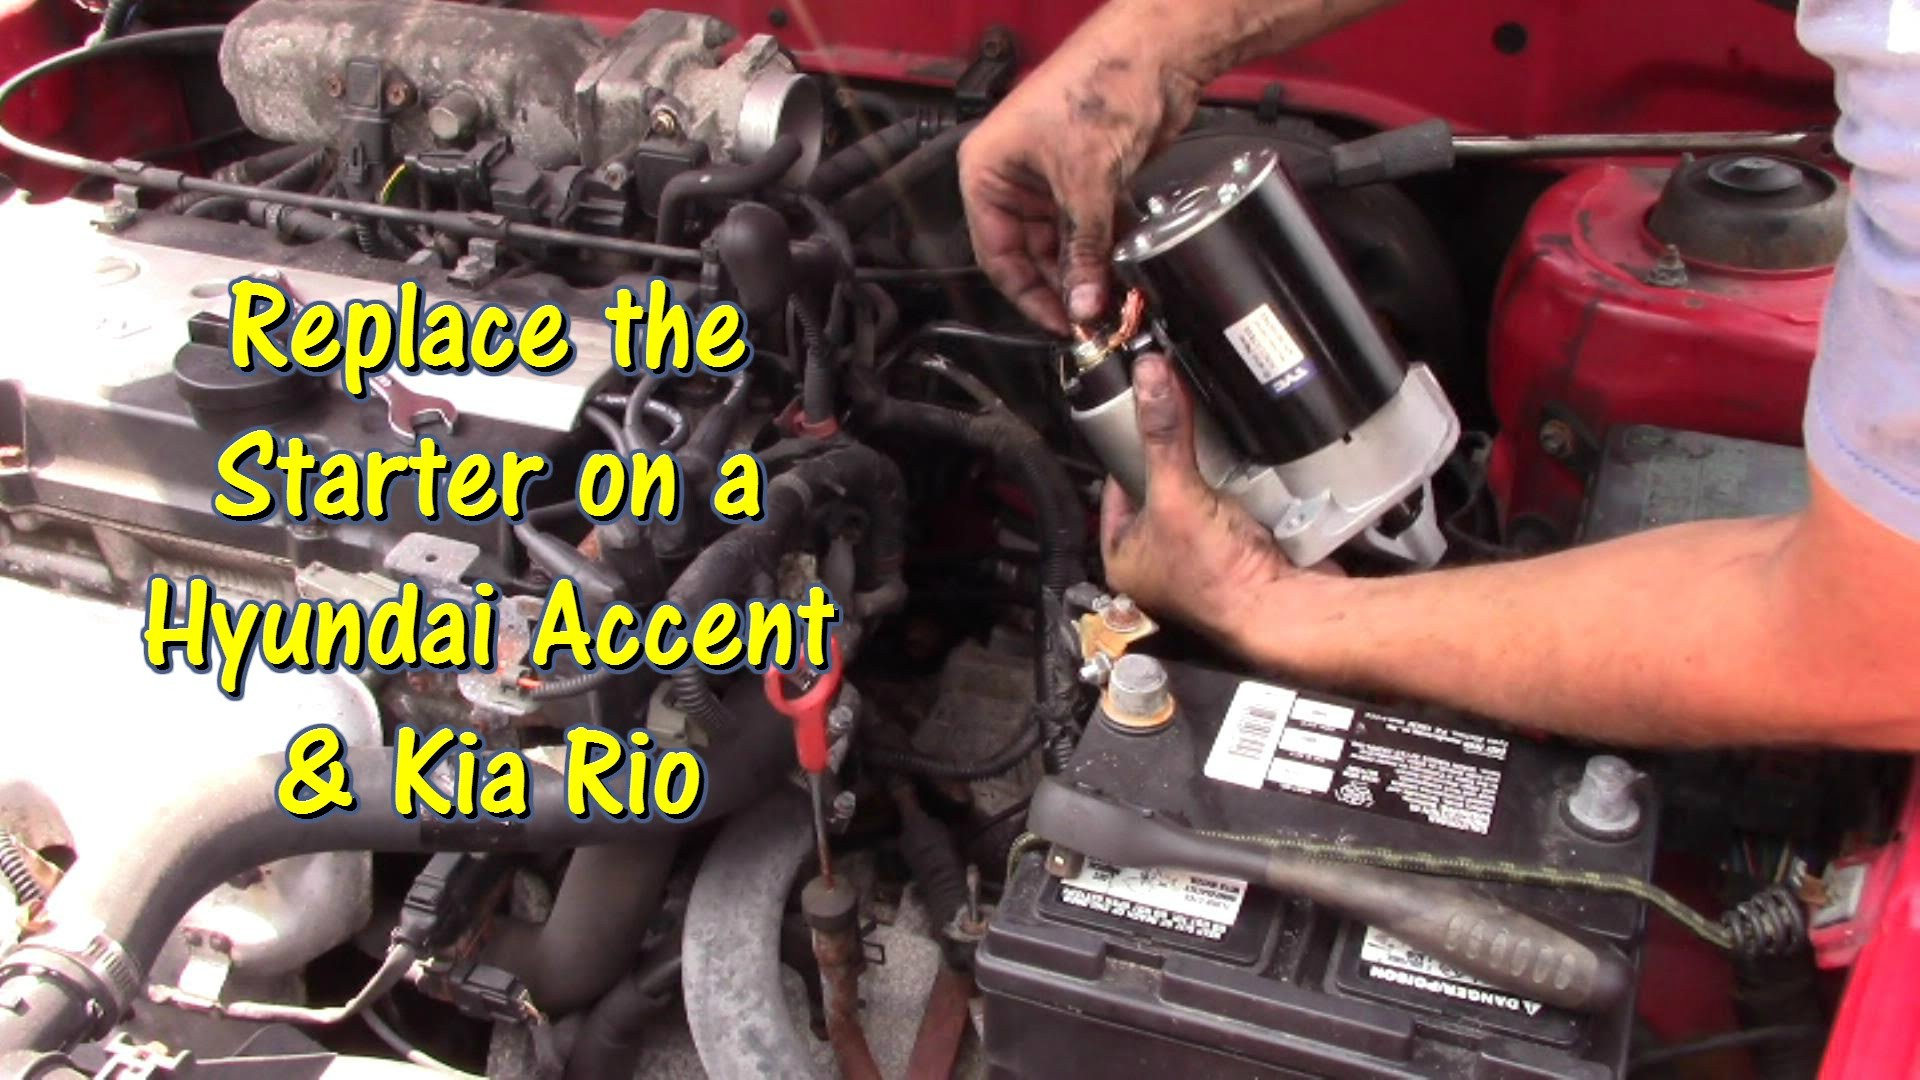 2009 Hyundai Accent Engine Diagram How to Replace A Starter On A Hyundai Accent & Kia Rio by Of 2009 Hyundai Accent Engine Diagram